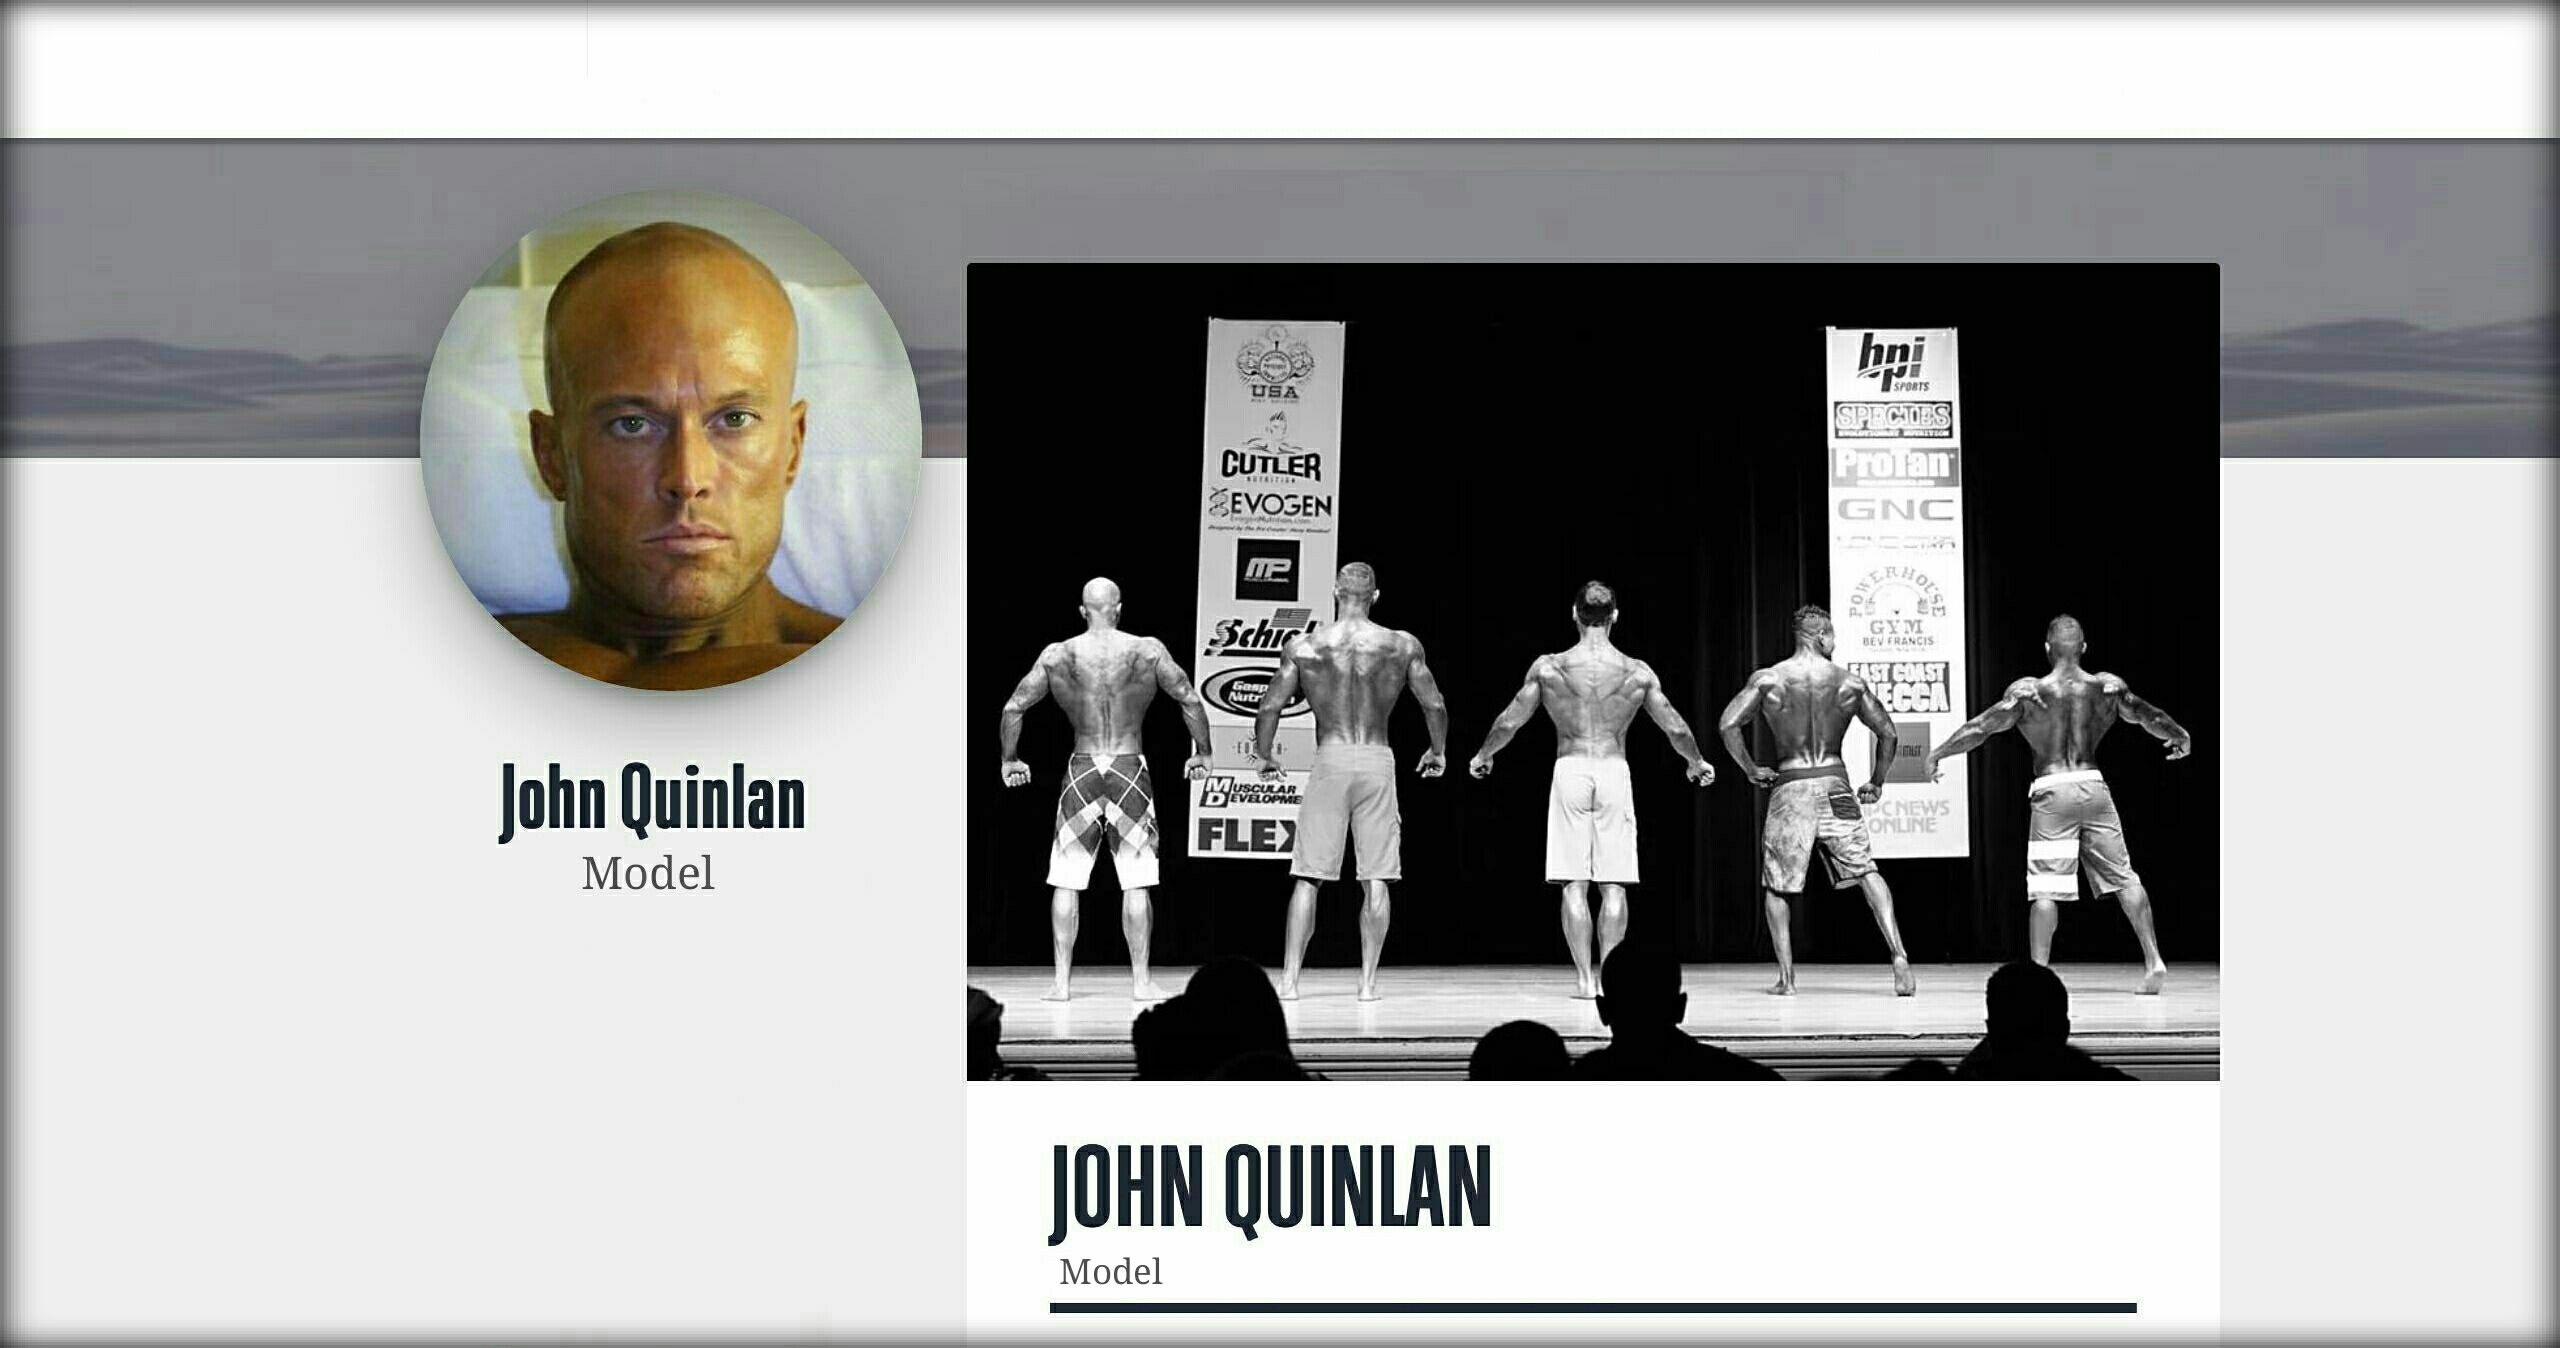 Model & Actor John Joseph Quinlan Biography @ Uplosed #JohnQuinlan